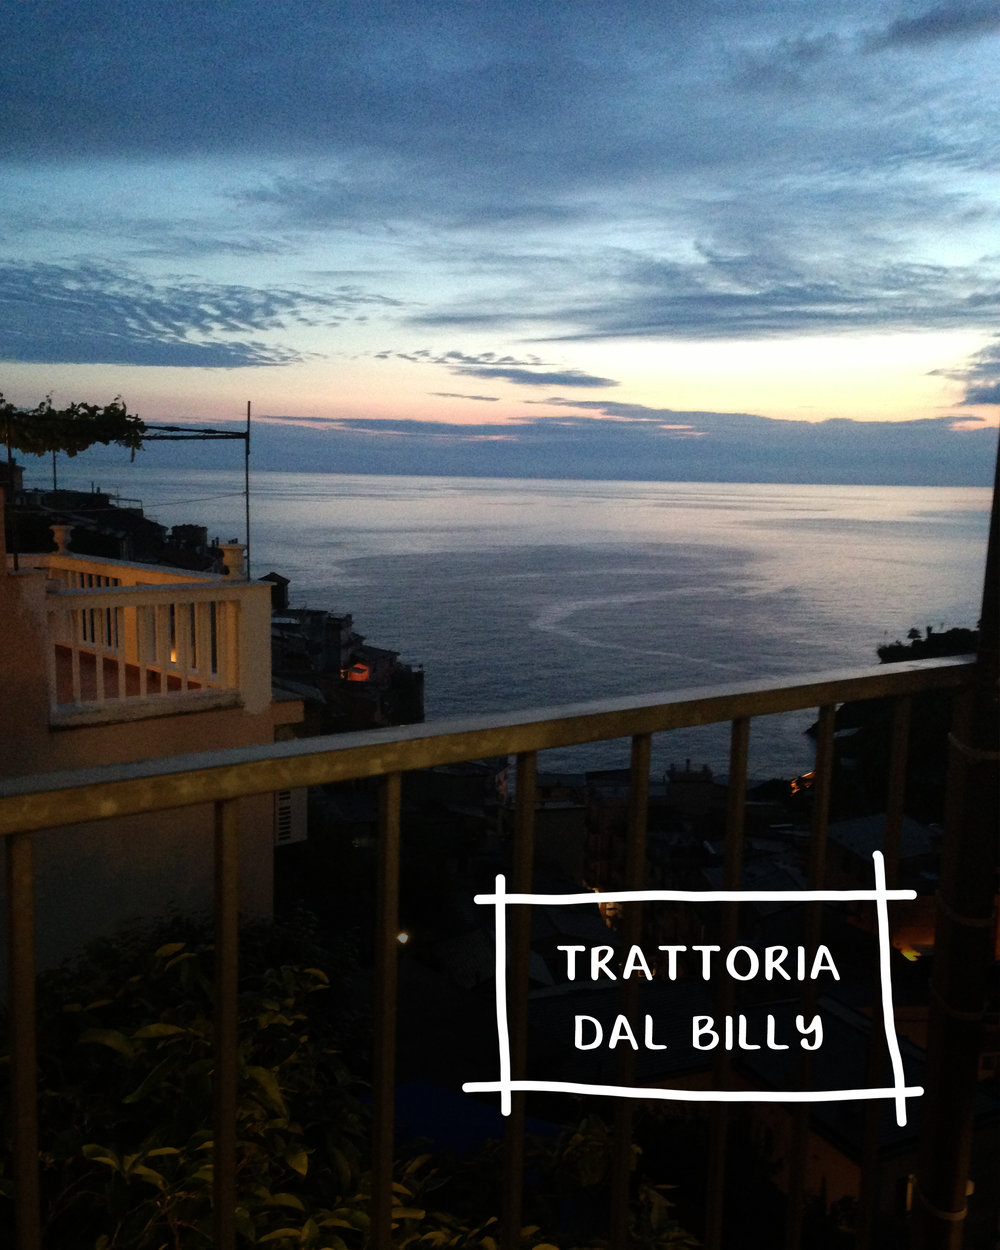 Five Restaurants In Europe For A Unique & Authentic Experience | Trattoria dal Billy, Manarola Italy | Sea of Atlas